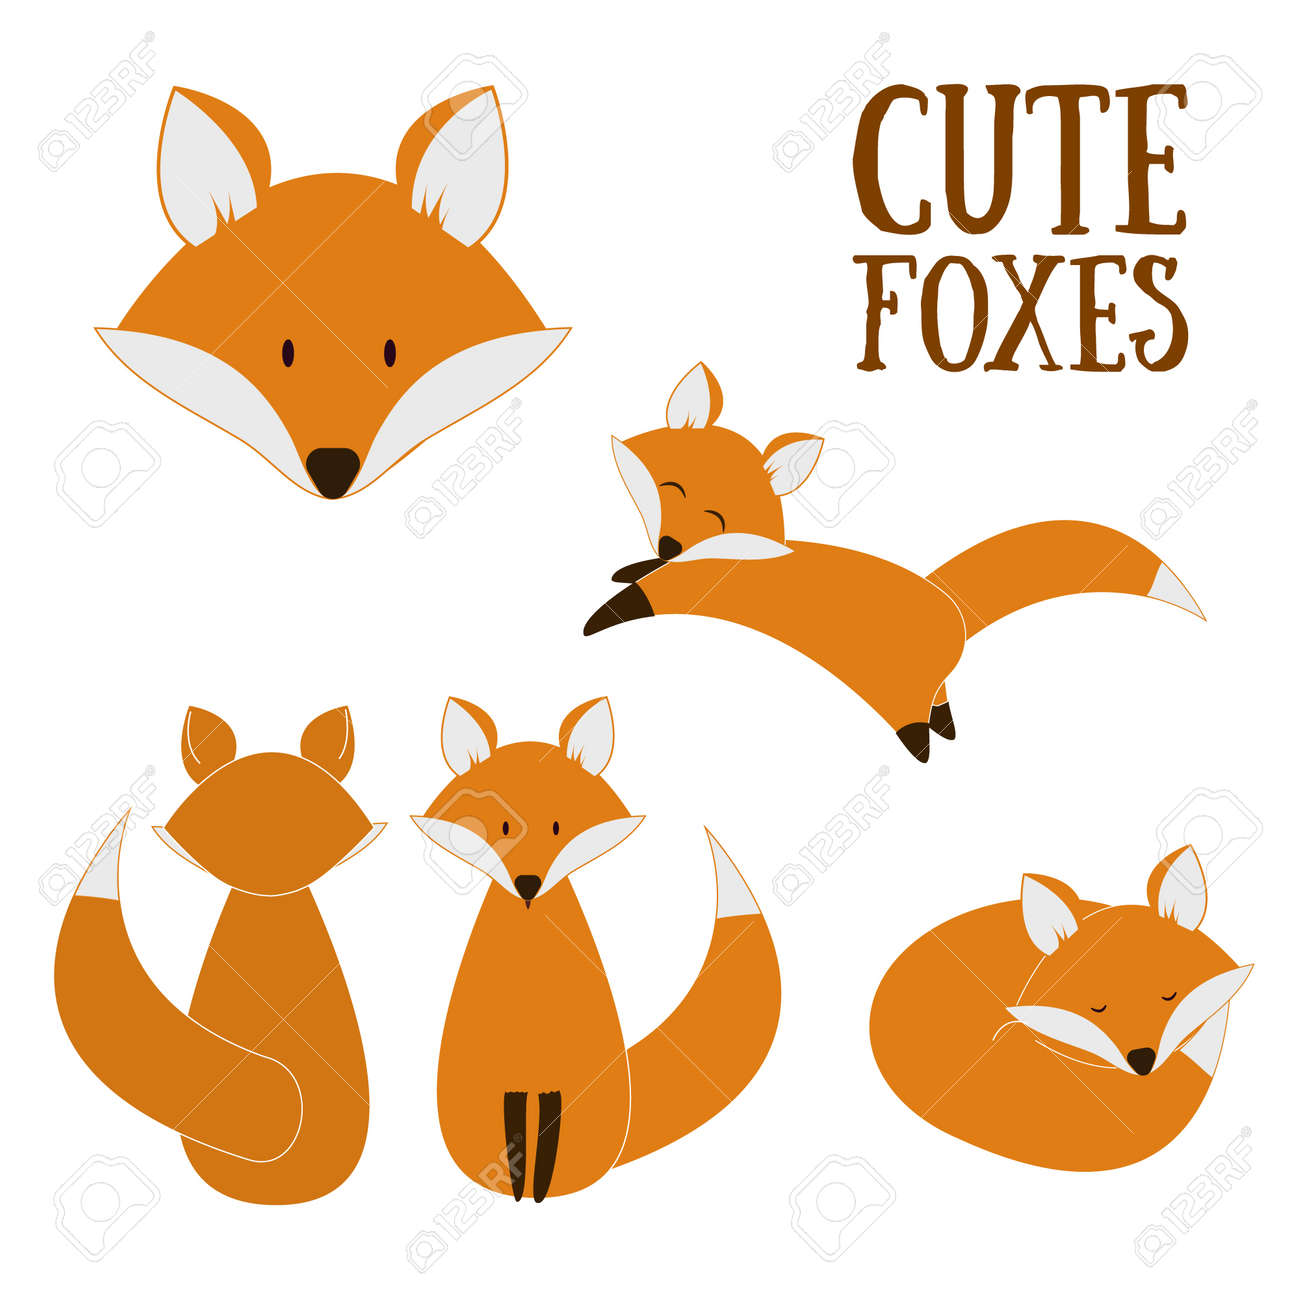 1 717 fox hunting stock illustrations cliparts and royalty free fox rh 123rf com free clipart for fox hunting